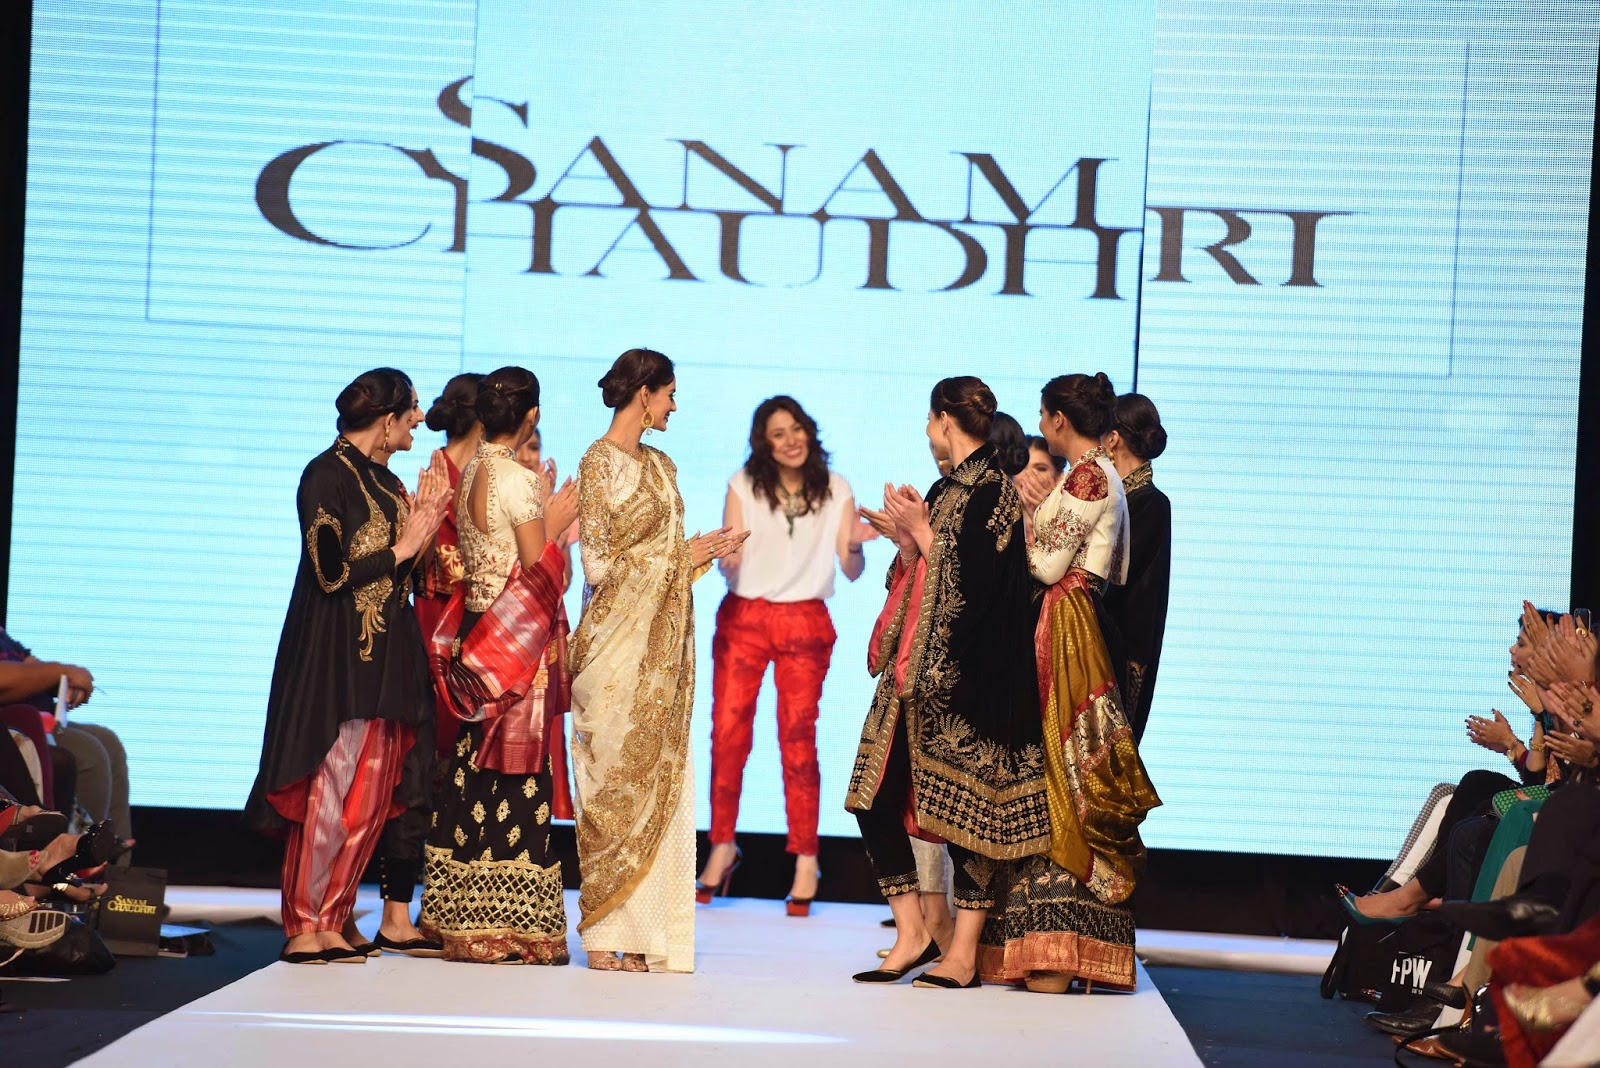 Sanam Chaudhri with the models at the end of the show